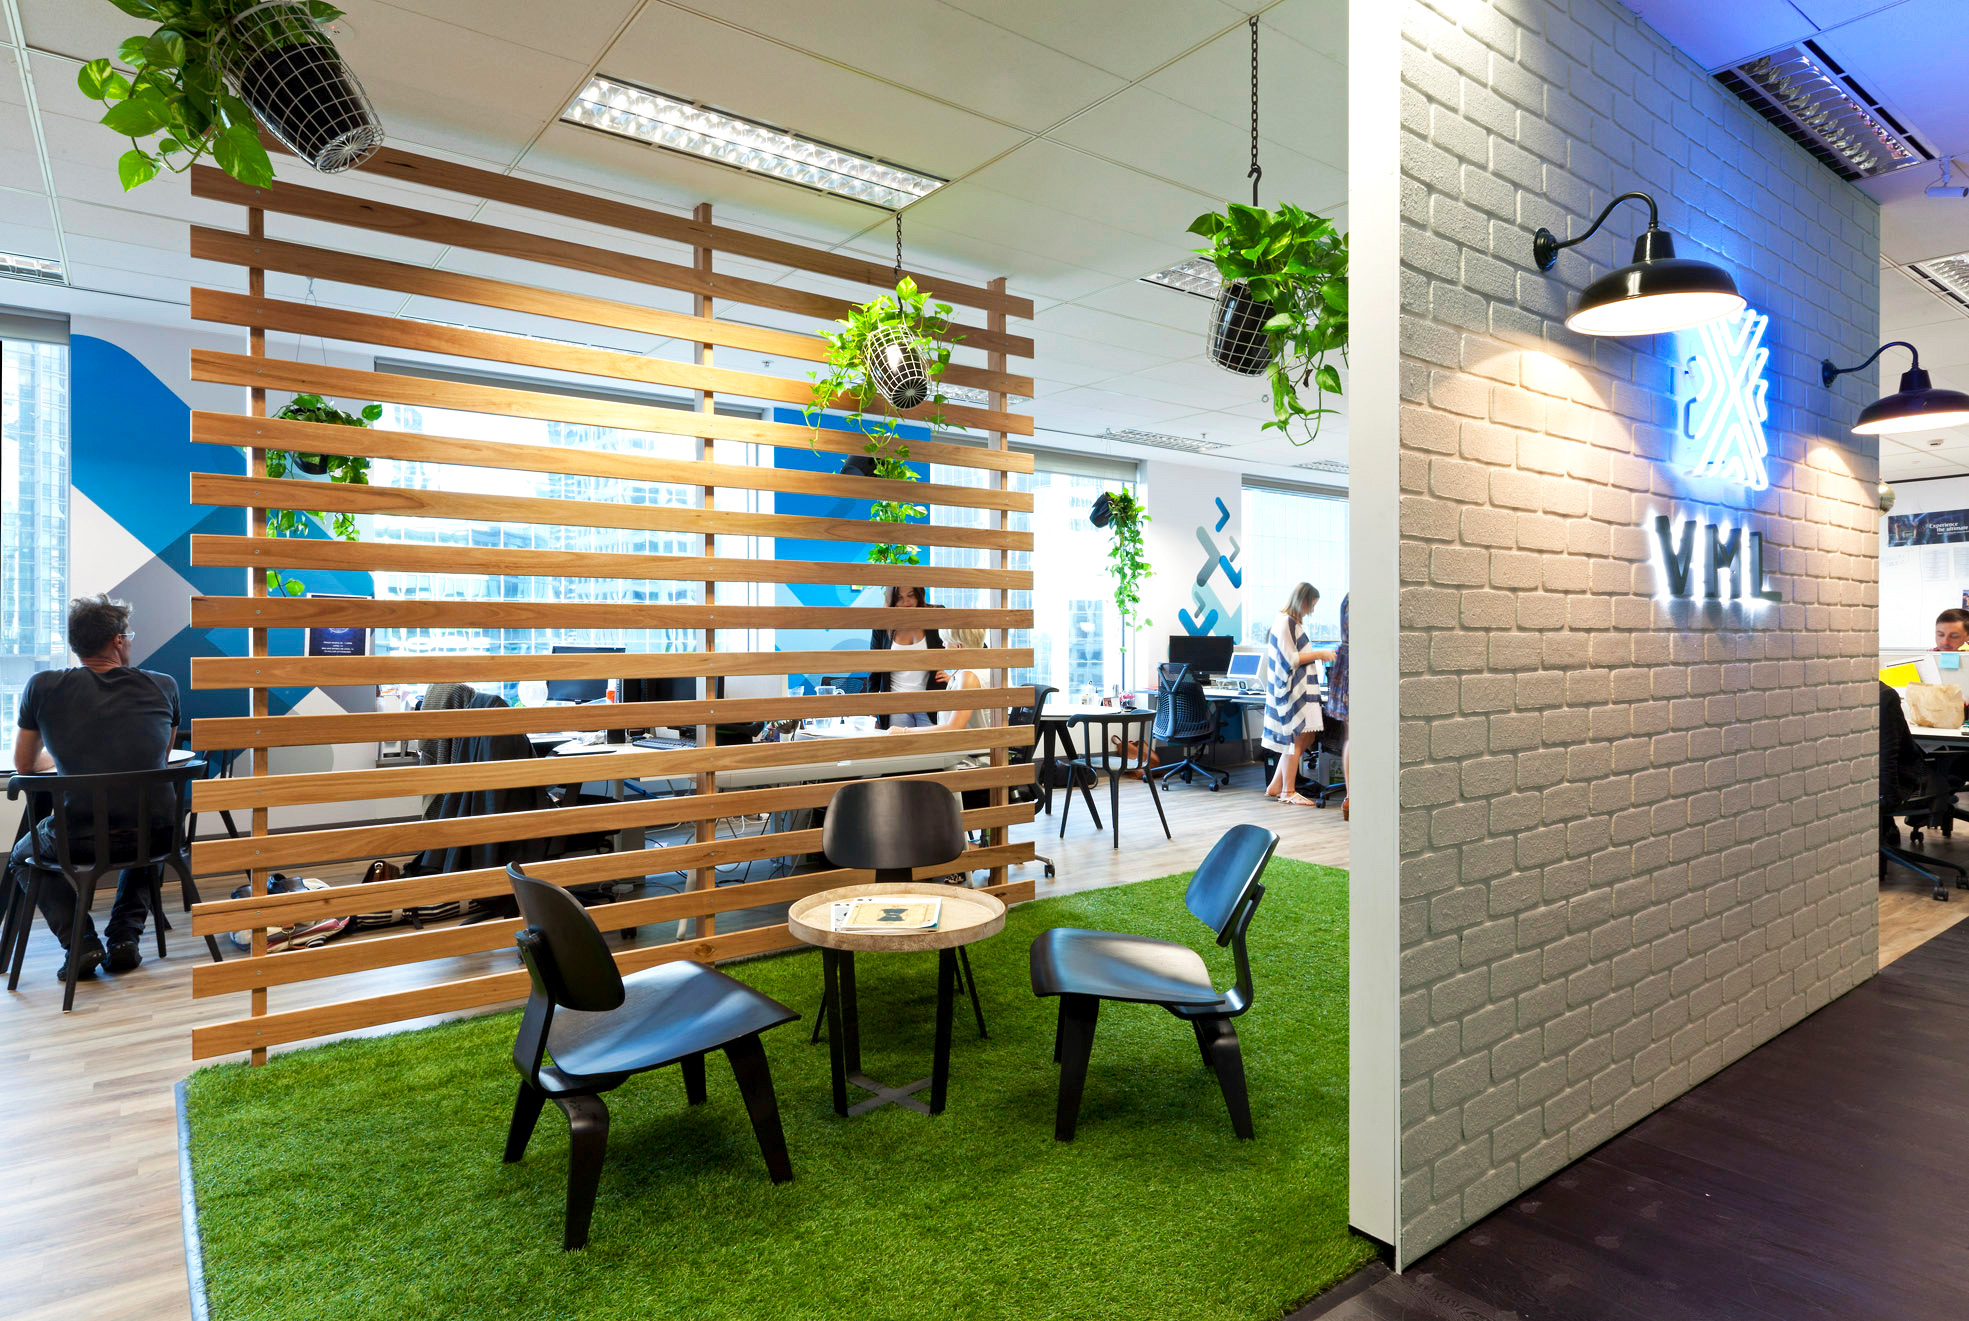 How can biophilic design be integrated into the modern workplace? - There are many ways biophilic design can be incorporated into the workplace, with an array of options that are both obvious, such as greenery and materials, and less obvious, like textures and colours.Plants are a good starting place for bringing nature into the office. Living walls, potted plants and trees are some of the most common examples. Elements of water can also be considered, as well as increased natural sunlight.Use of curvature and avoiding 'sterile' straight lines, emulating natural forms in the shape and layout of space is also possible.Material choice can also be key. Use of natural wood, colours, incorporating botanical or animal motifs can all be beneficial. Using new products designed to mimic nature can also provide the stimulation humans need to benefit from biophilic design.